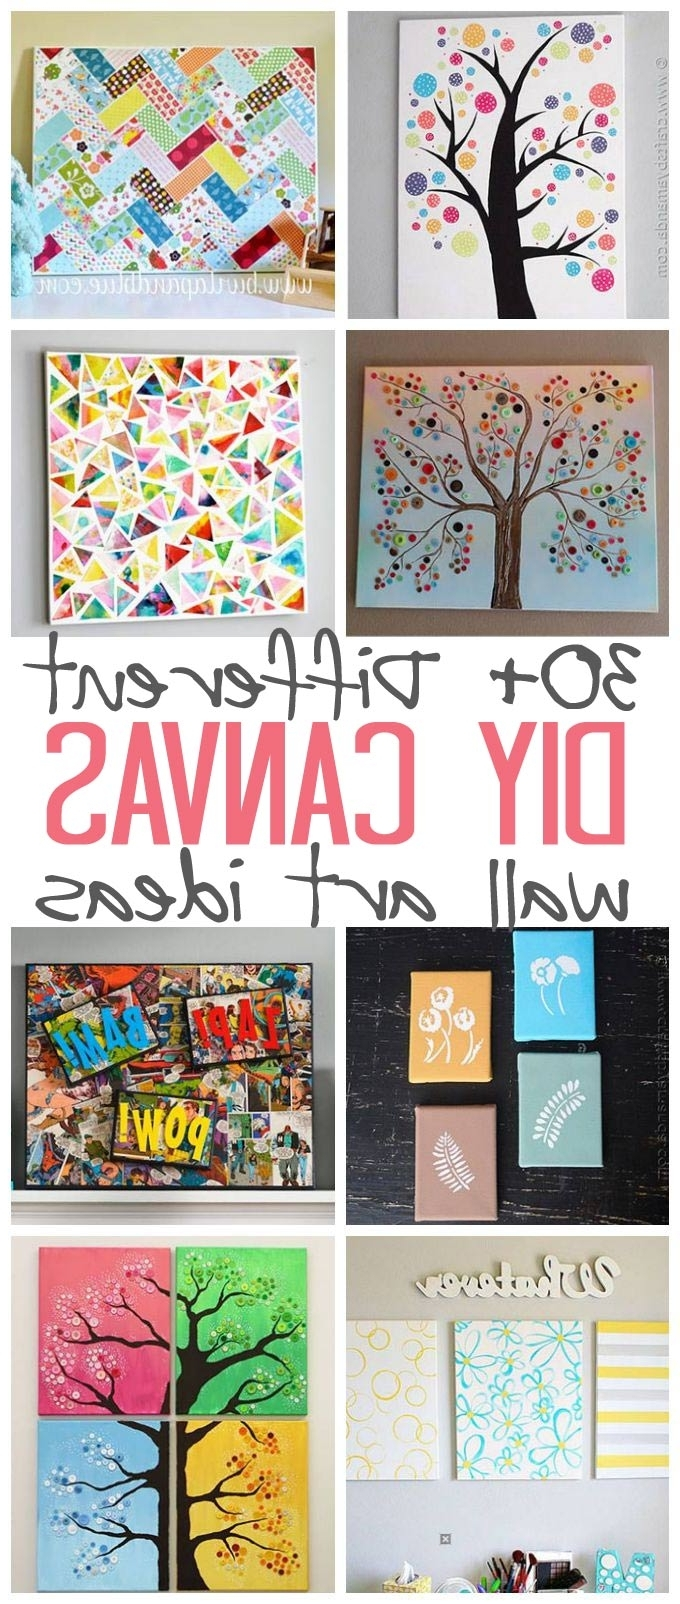 Diy Canvas Wall Art For Most Up To Date Canvas Wall Art Ideas: 30+ Canvas Tutorials (View 5 of 15)